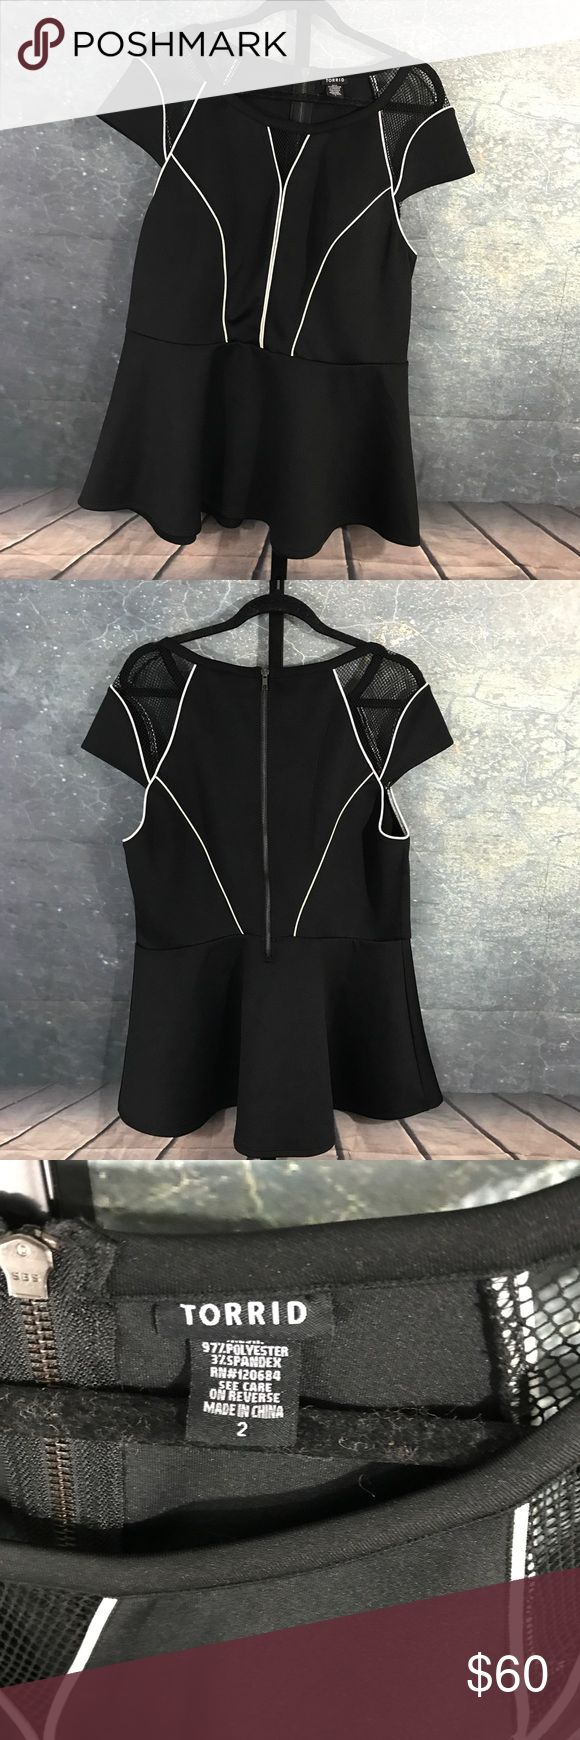 Torrid Black Net Peplum Top size 2 Black top with netting on sleeves and on front of top. White trim accents the top. Torrid Tops